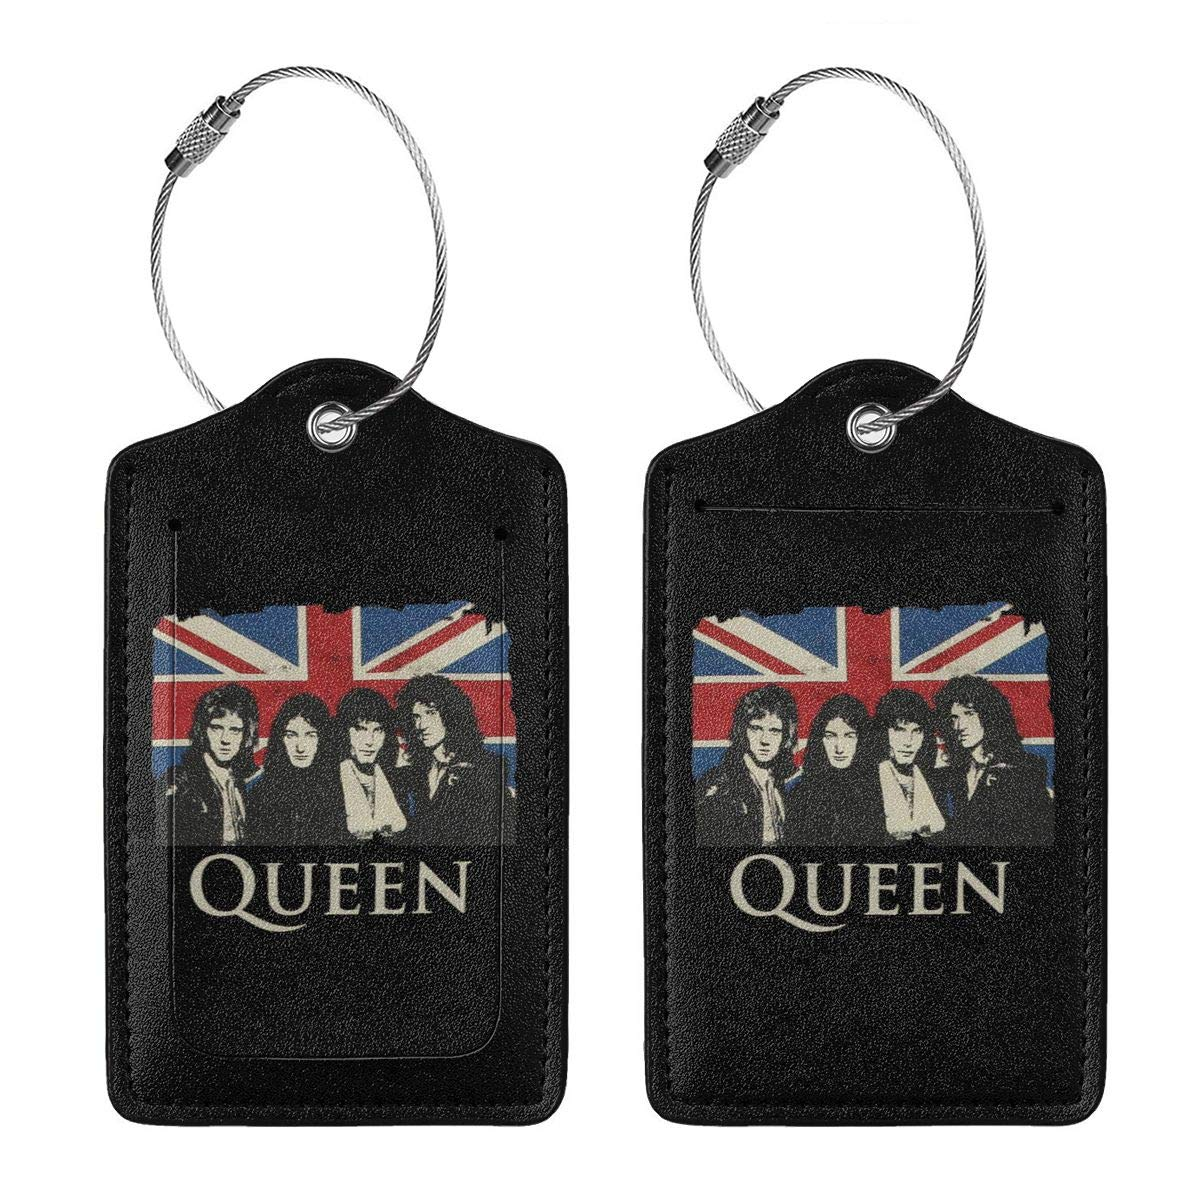 Queen Vintage Leather Luggage Tag Travel ID Label For Baggage Suitcase